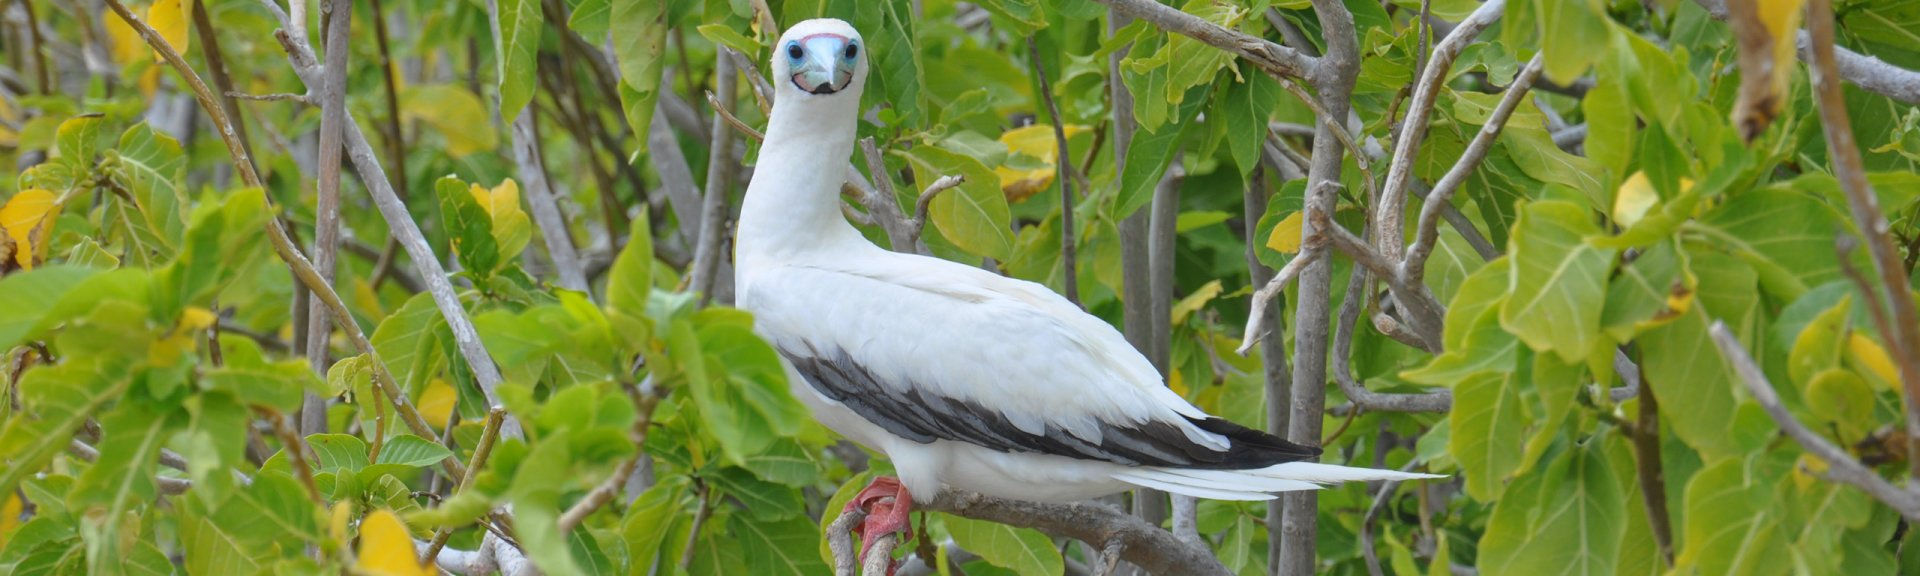 Red-footed booby in a pisonia tree on North-east Cay (one of the Herald Cays in the Coral Sea Marine Park)